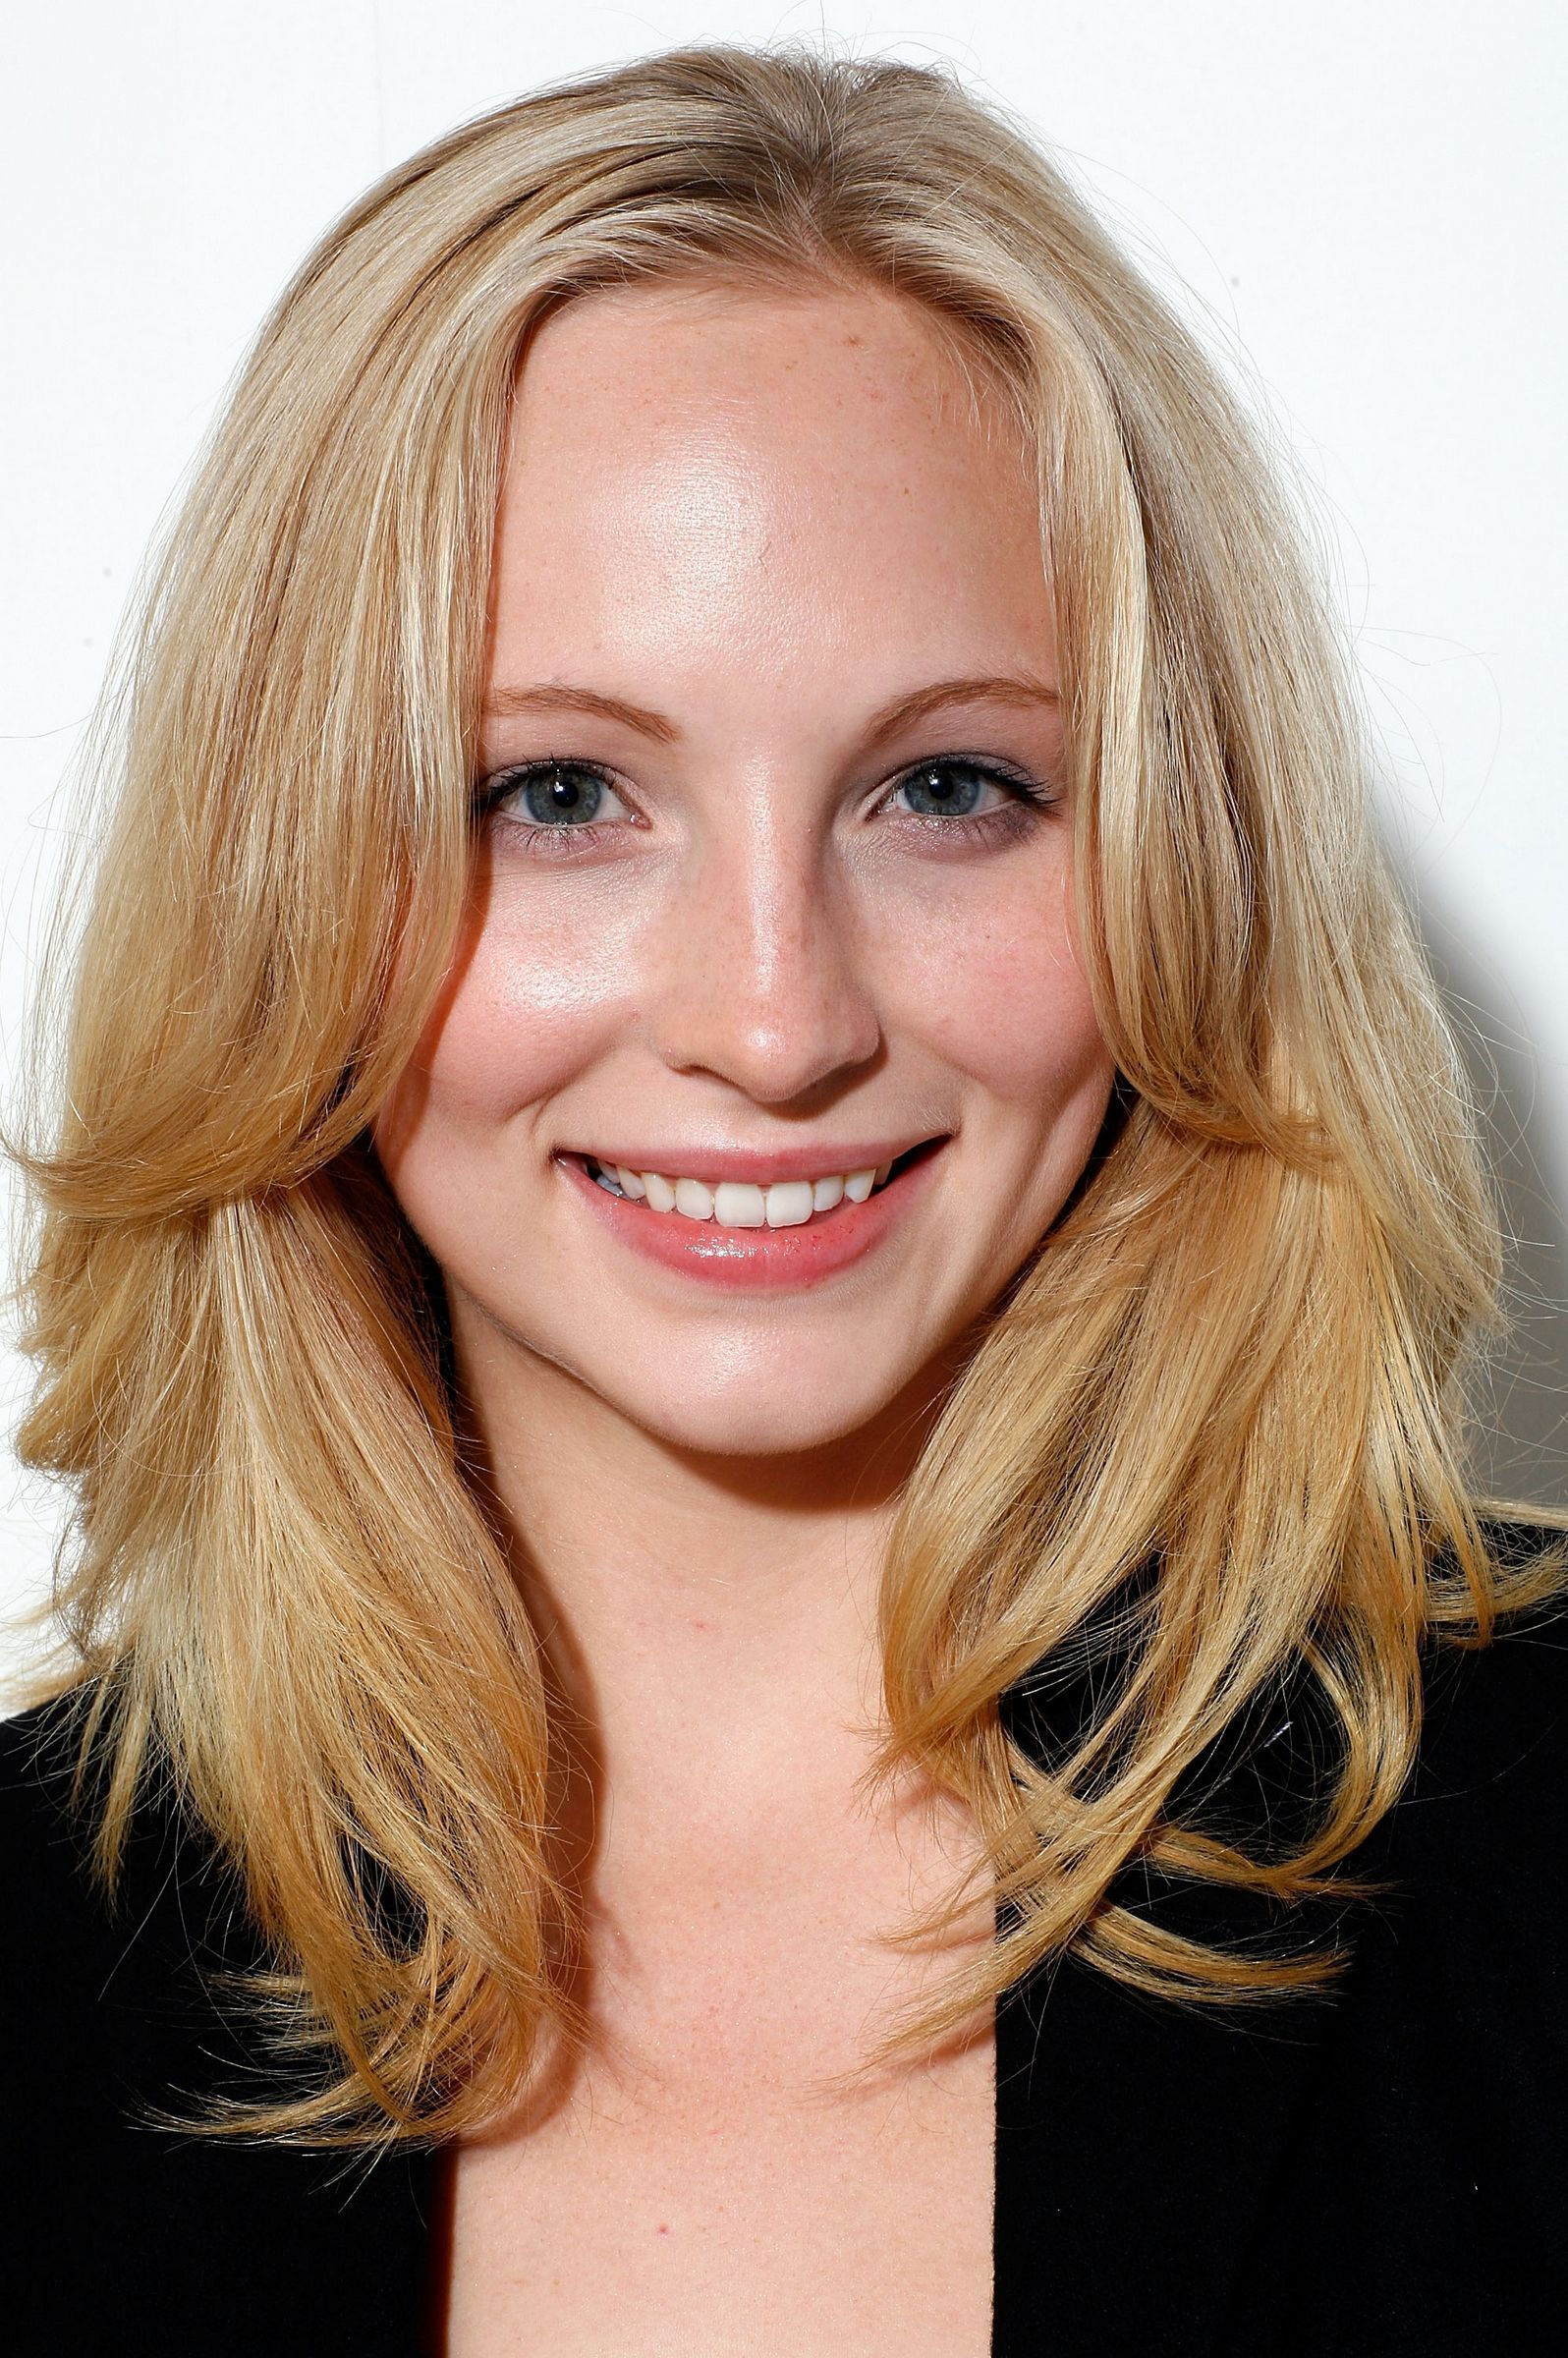 Download this Candice Accola picture